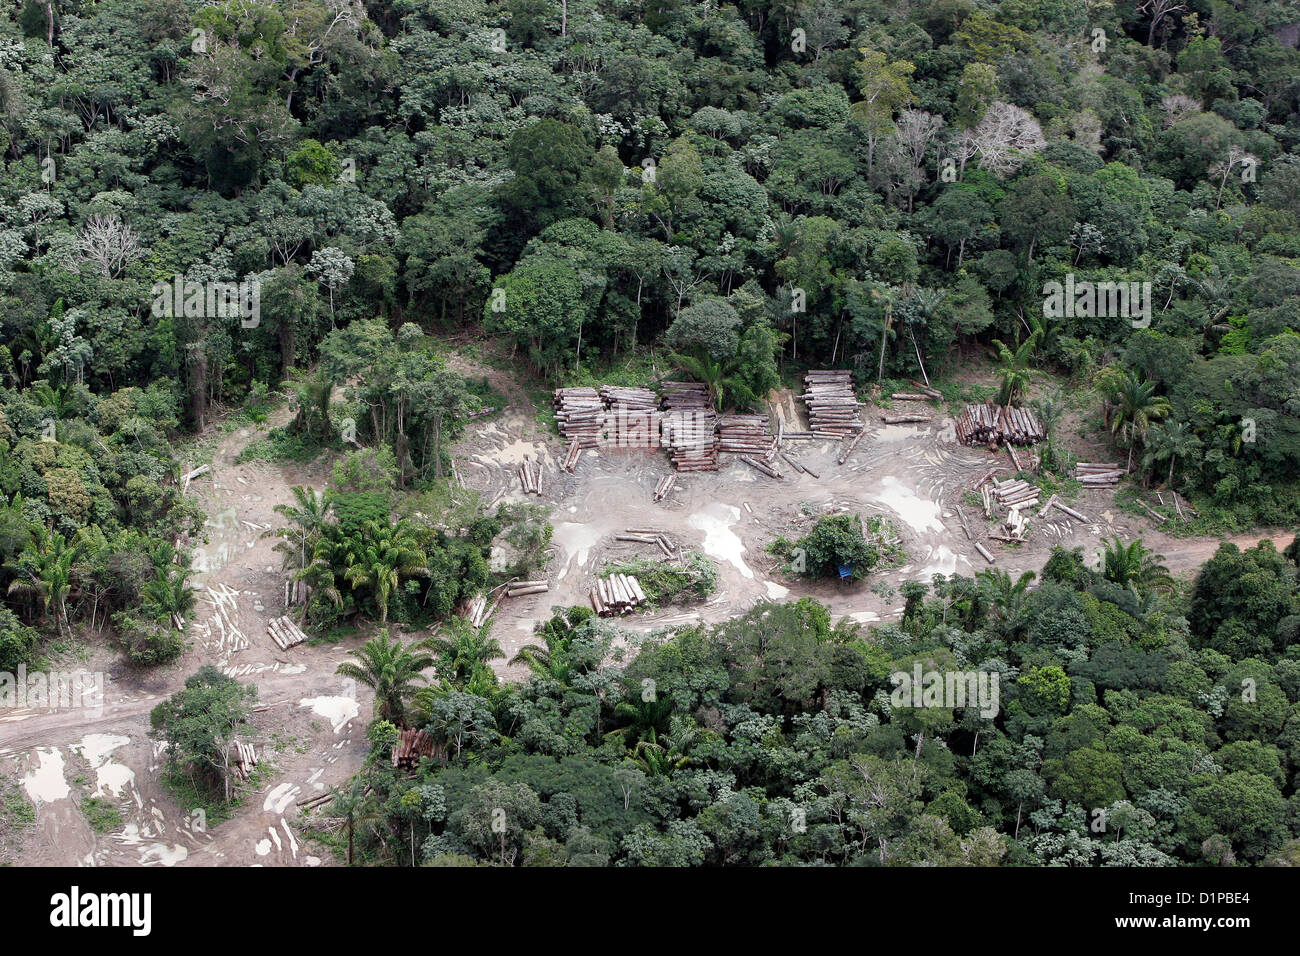 Amazon rain forest clearance for agriculture Illegal cut log hidden in forest from IBAMA - Brazilian Environmental - Stock Image